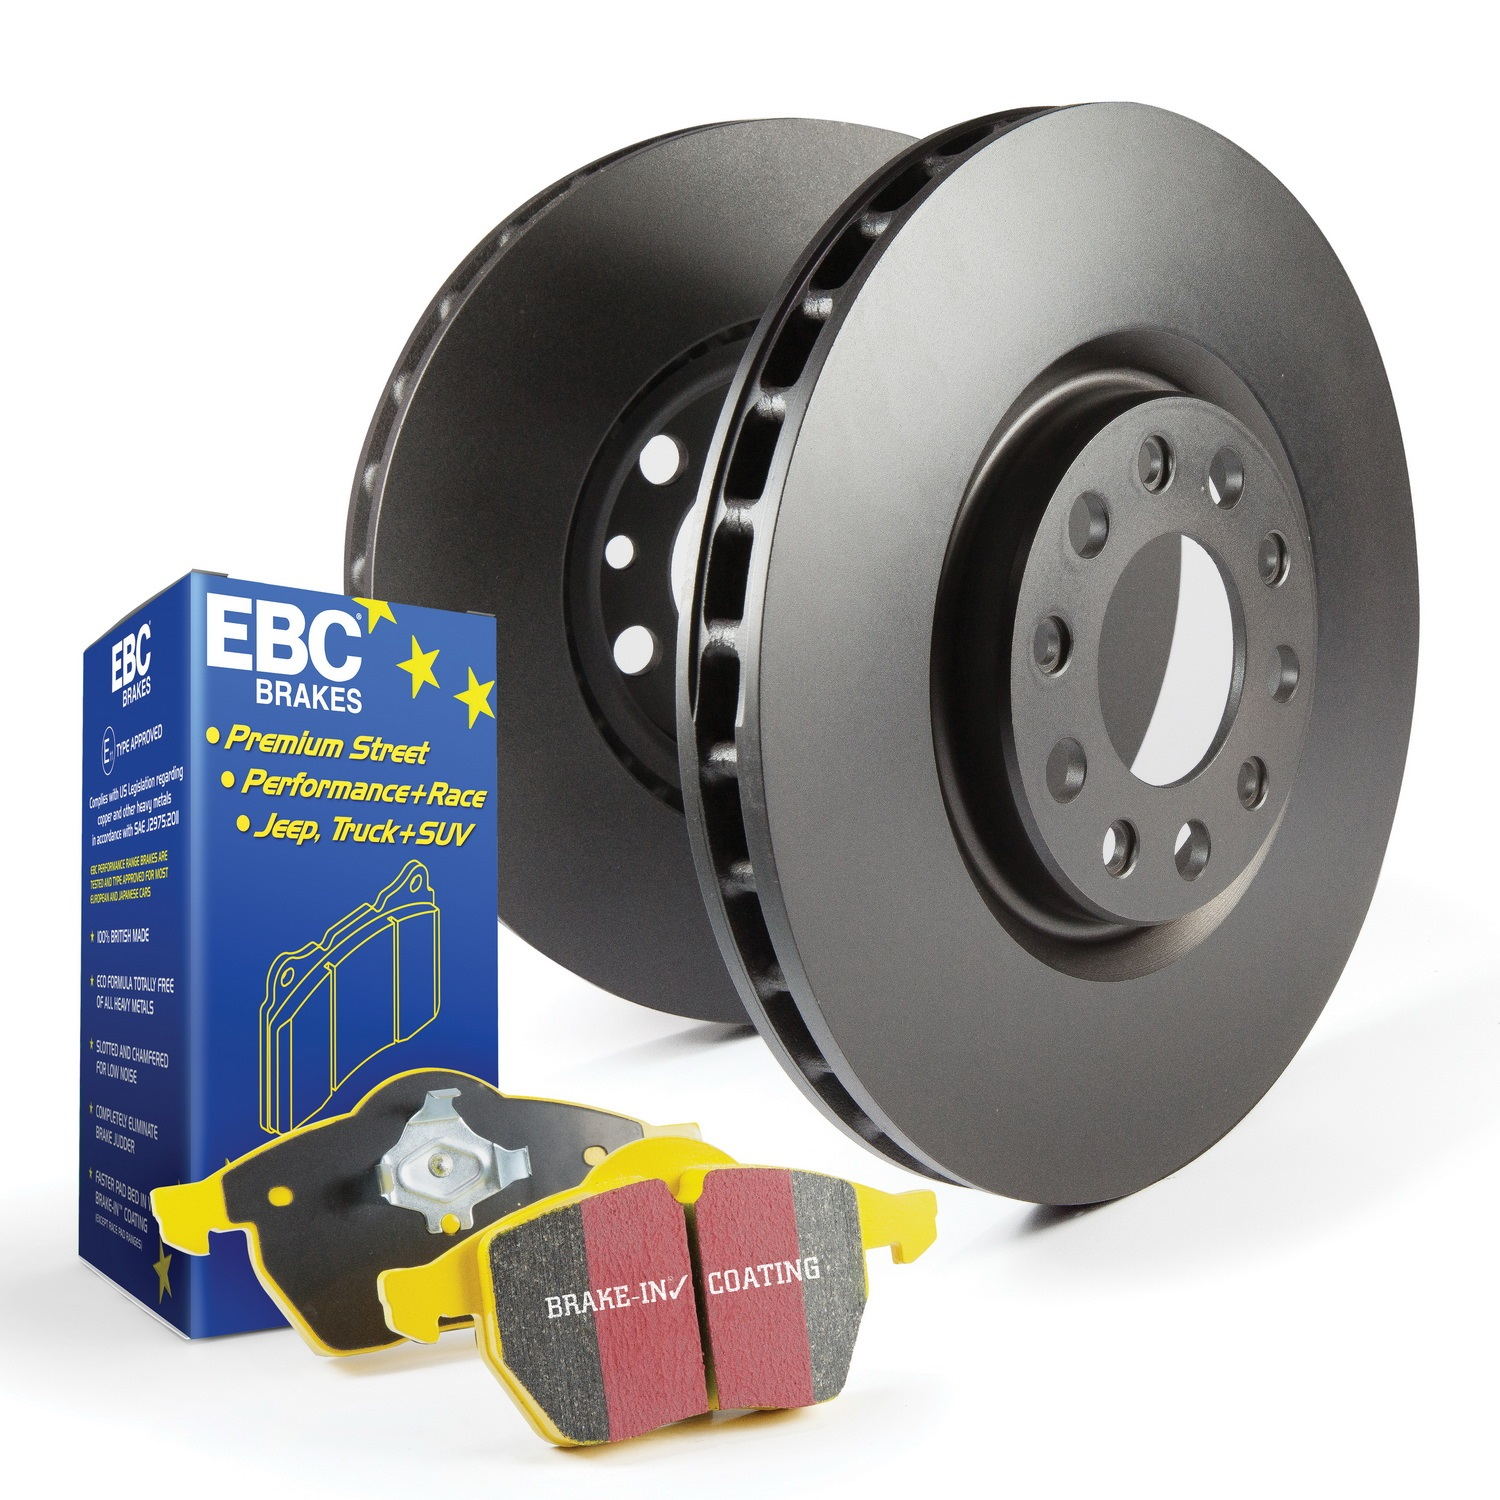 EBC Brakes S13KR1633 S13 Kits Yellowstuff and RK Rotors Fits 535d 535d xDrive